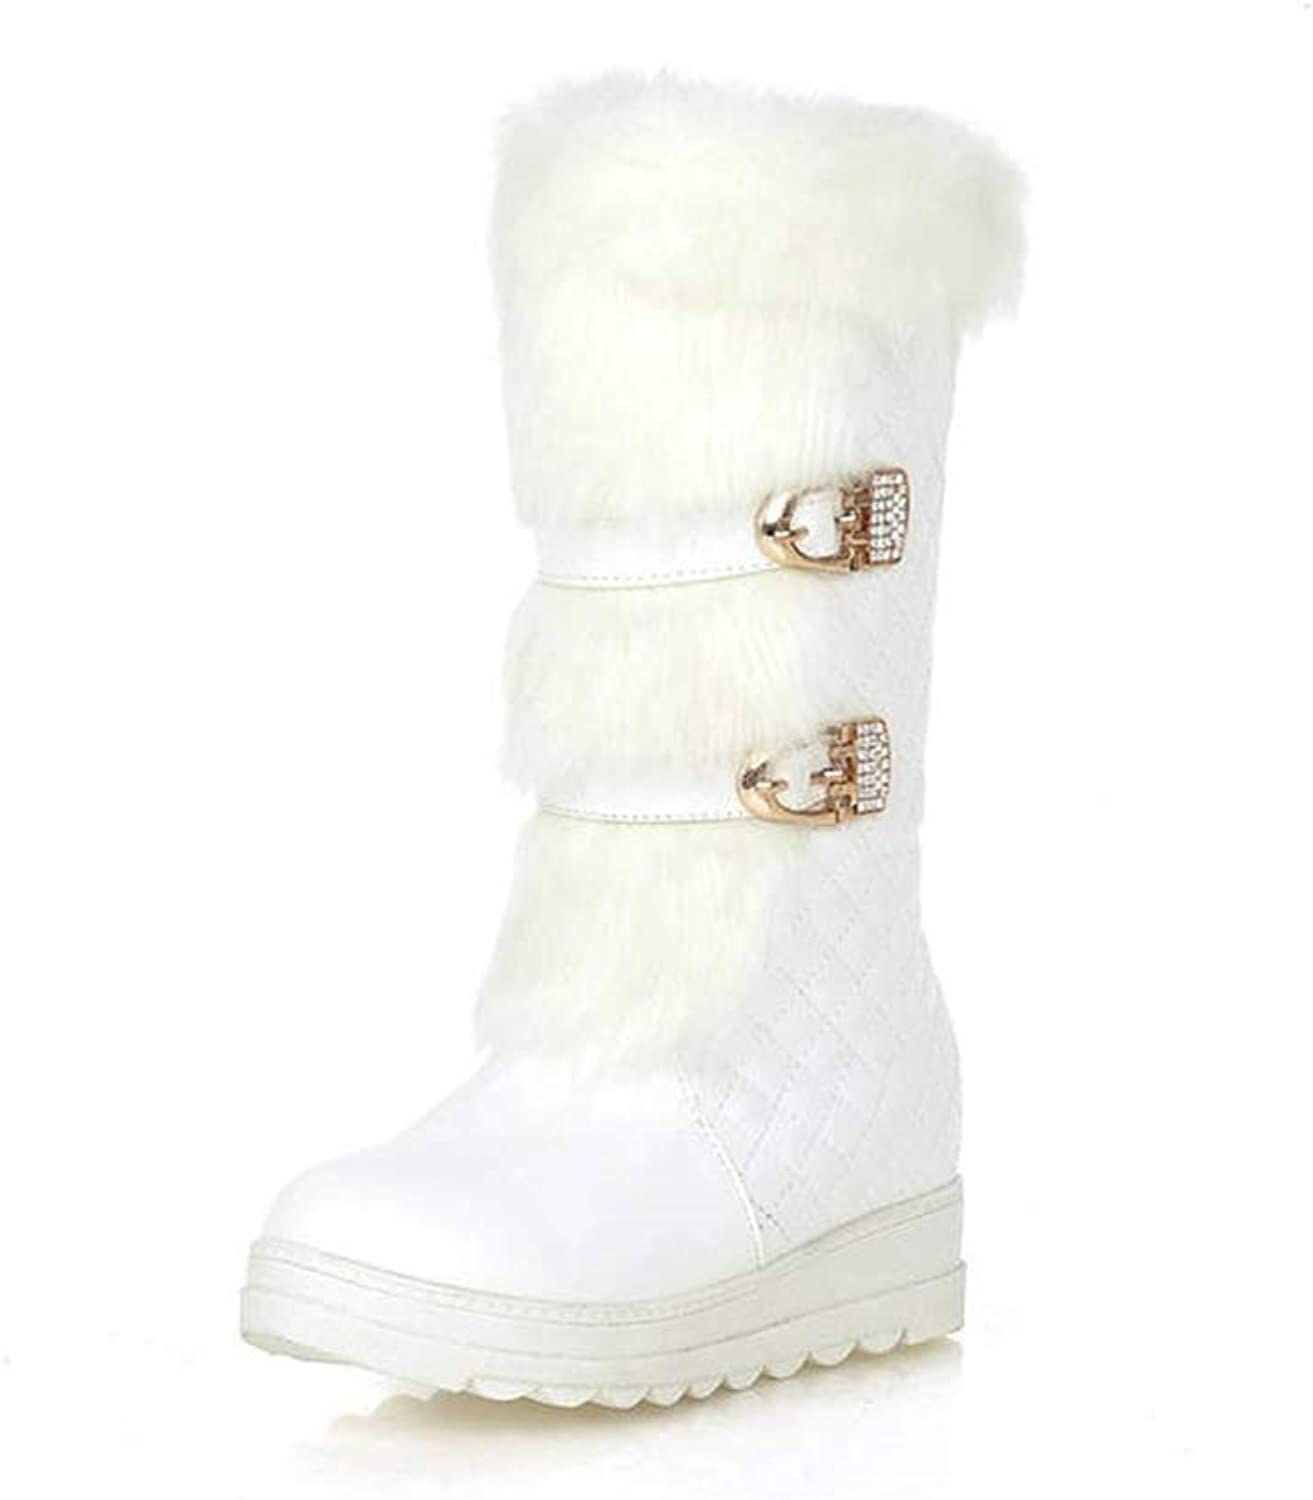 Zarbrina Womens Fur Lined Mid Calf Boots Rubber Sole an-Ti Slip Short Plush Buckle Strap Winter Warm Snow shoes